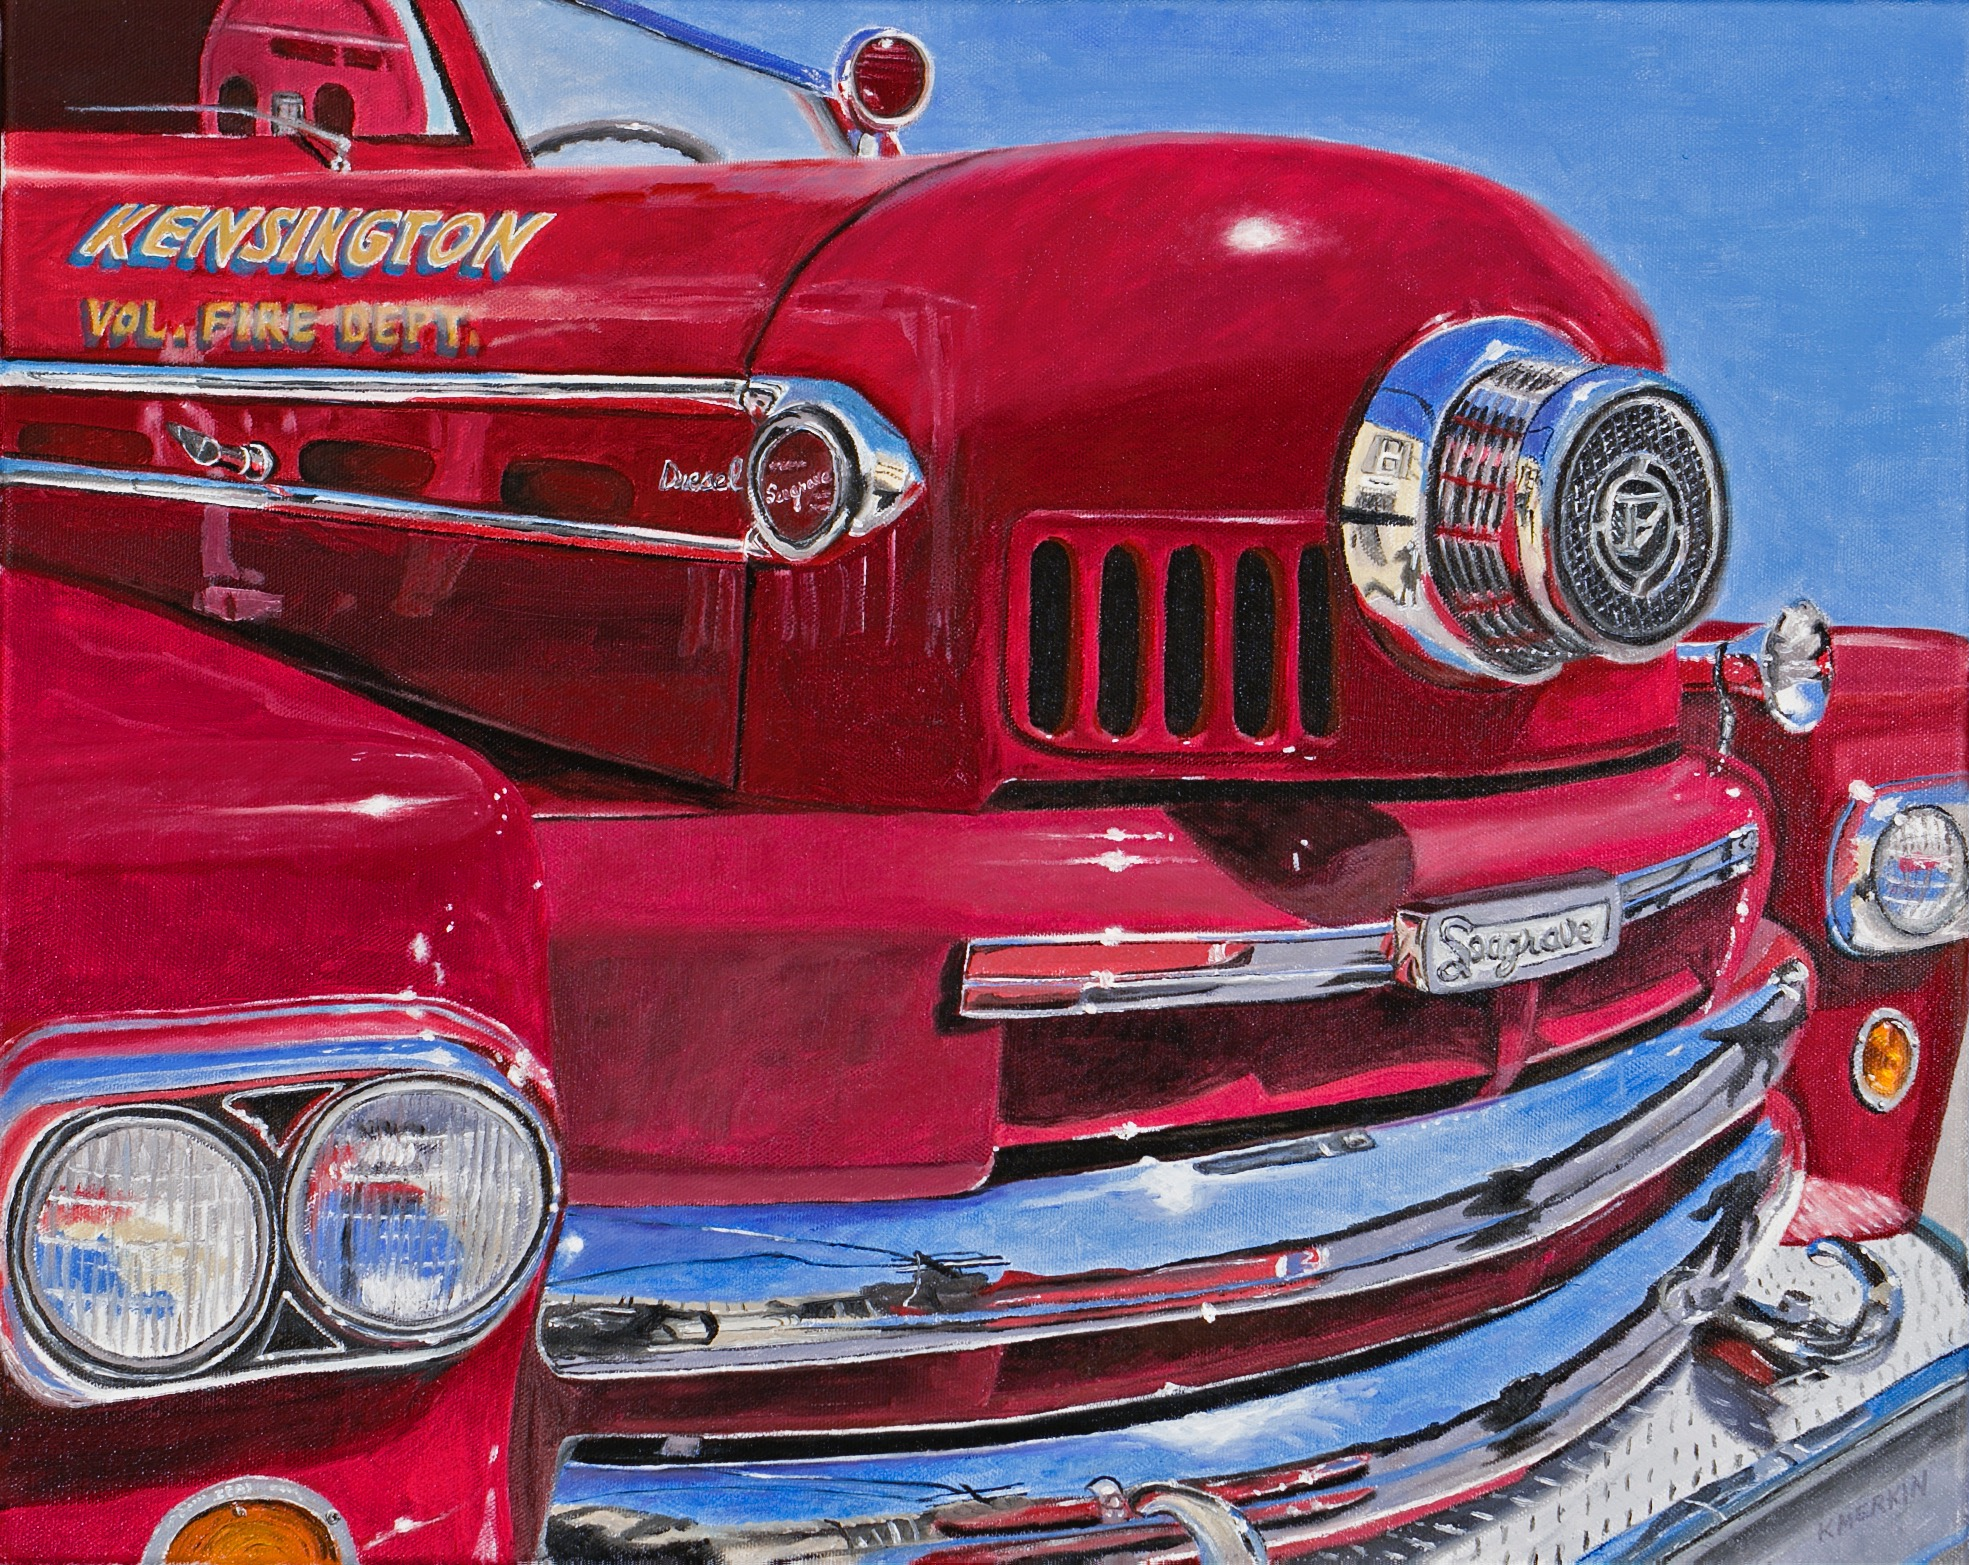 Photo-Realistic painting of the old Kensington fire truck.